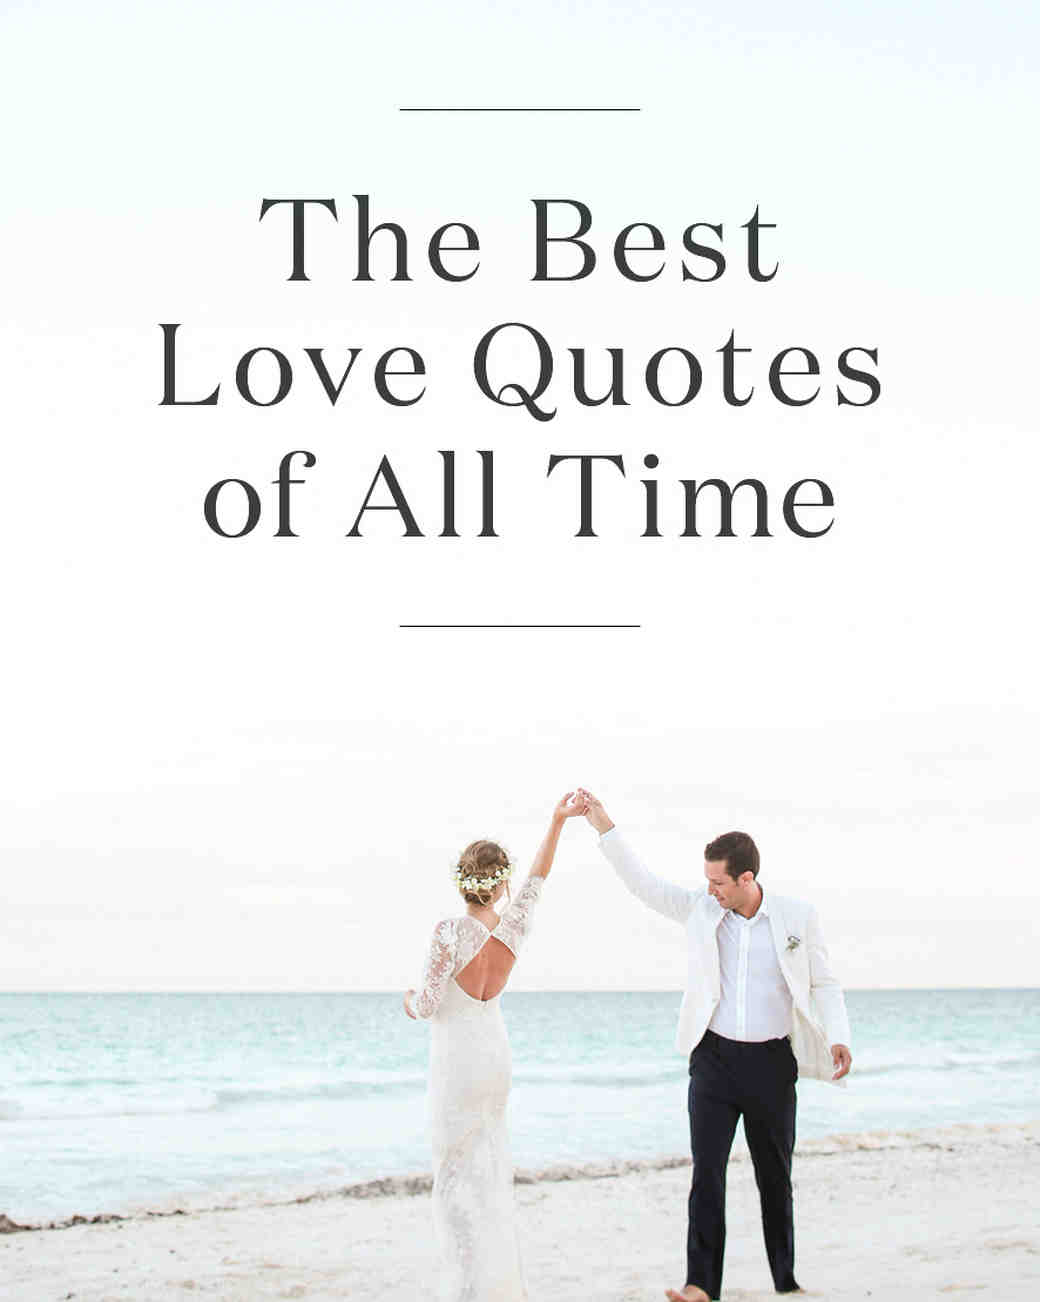 Famous Wedding Quotes The 20 Best Love Quotes Of All Time  Martha Stewart Weddings